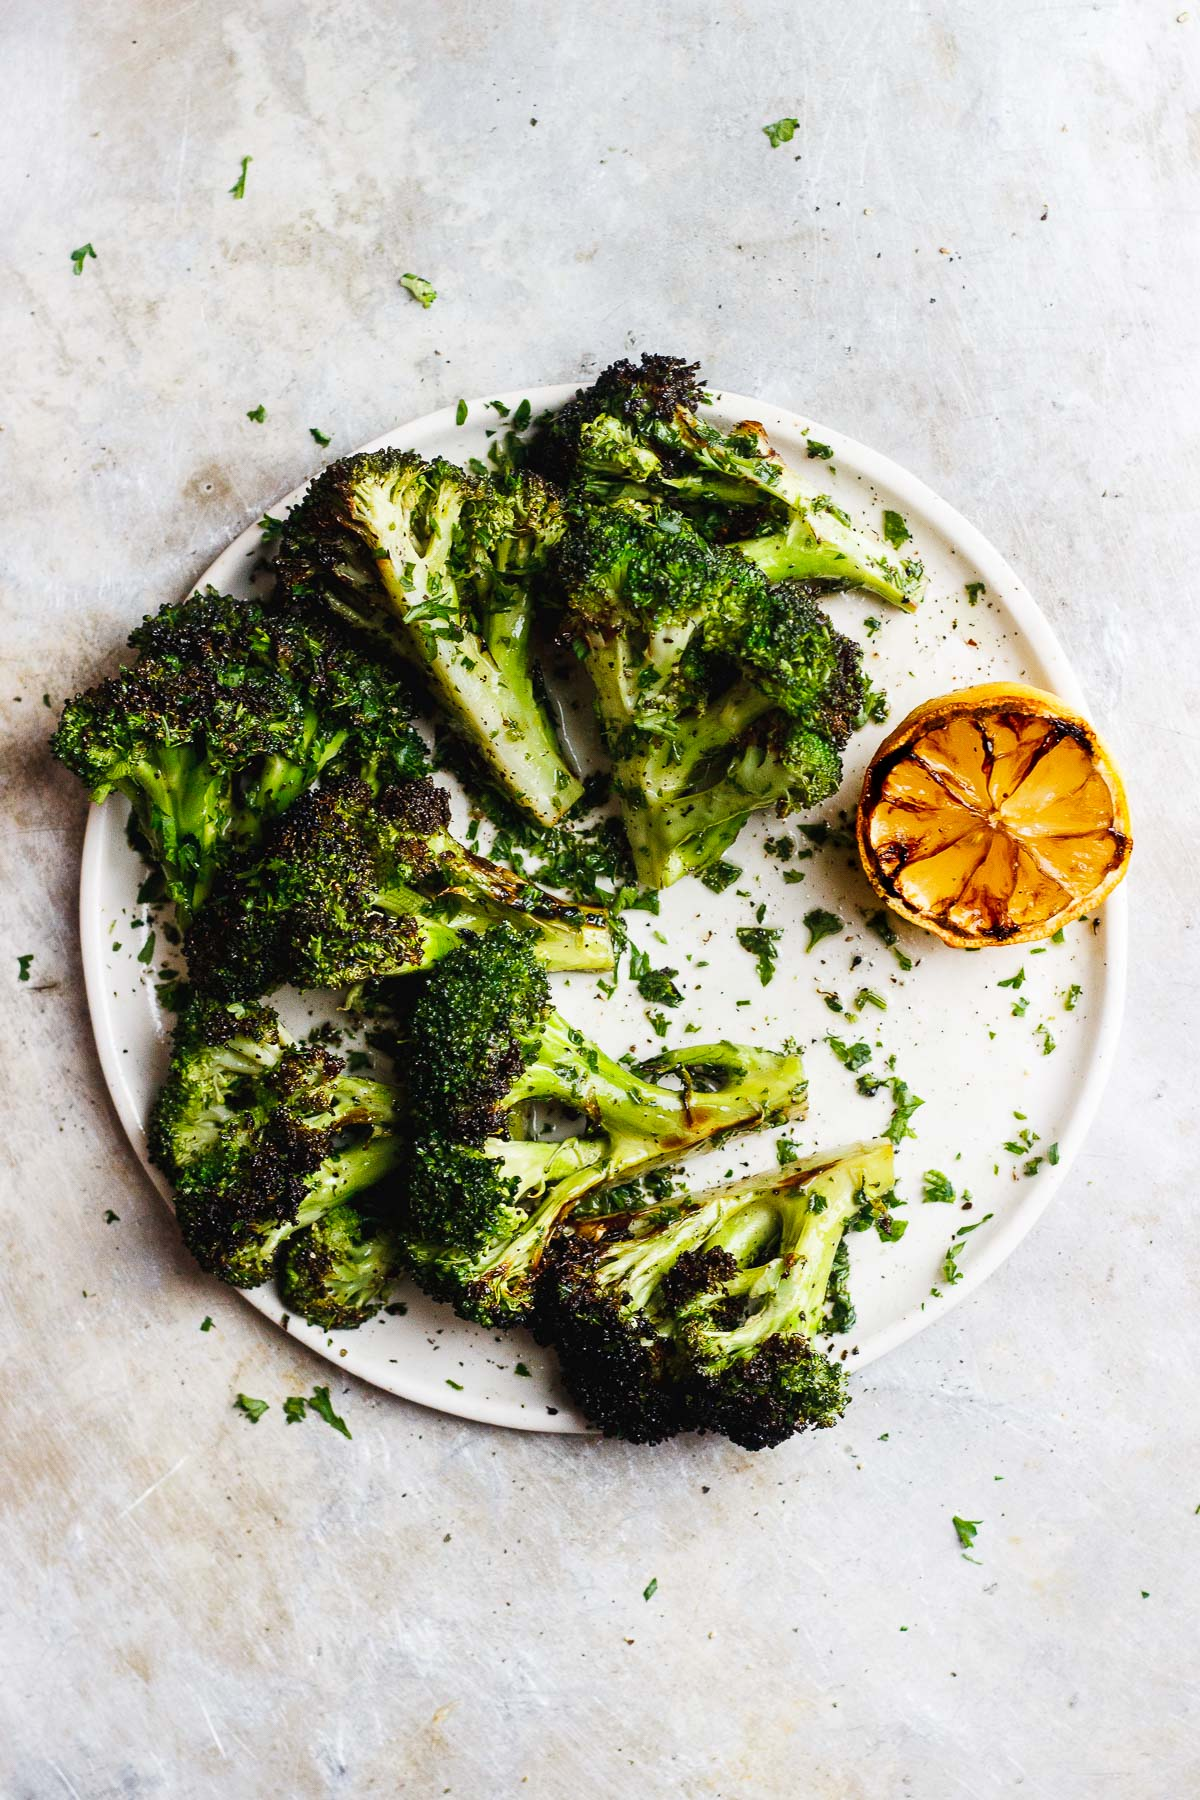 Grilled broccoli that is tossed in a zesty, charred lemon and parsley sauce. A naturally vegan and gluten-free side dish. #grilledbroccoli #grilledlemon #charredbroccoli